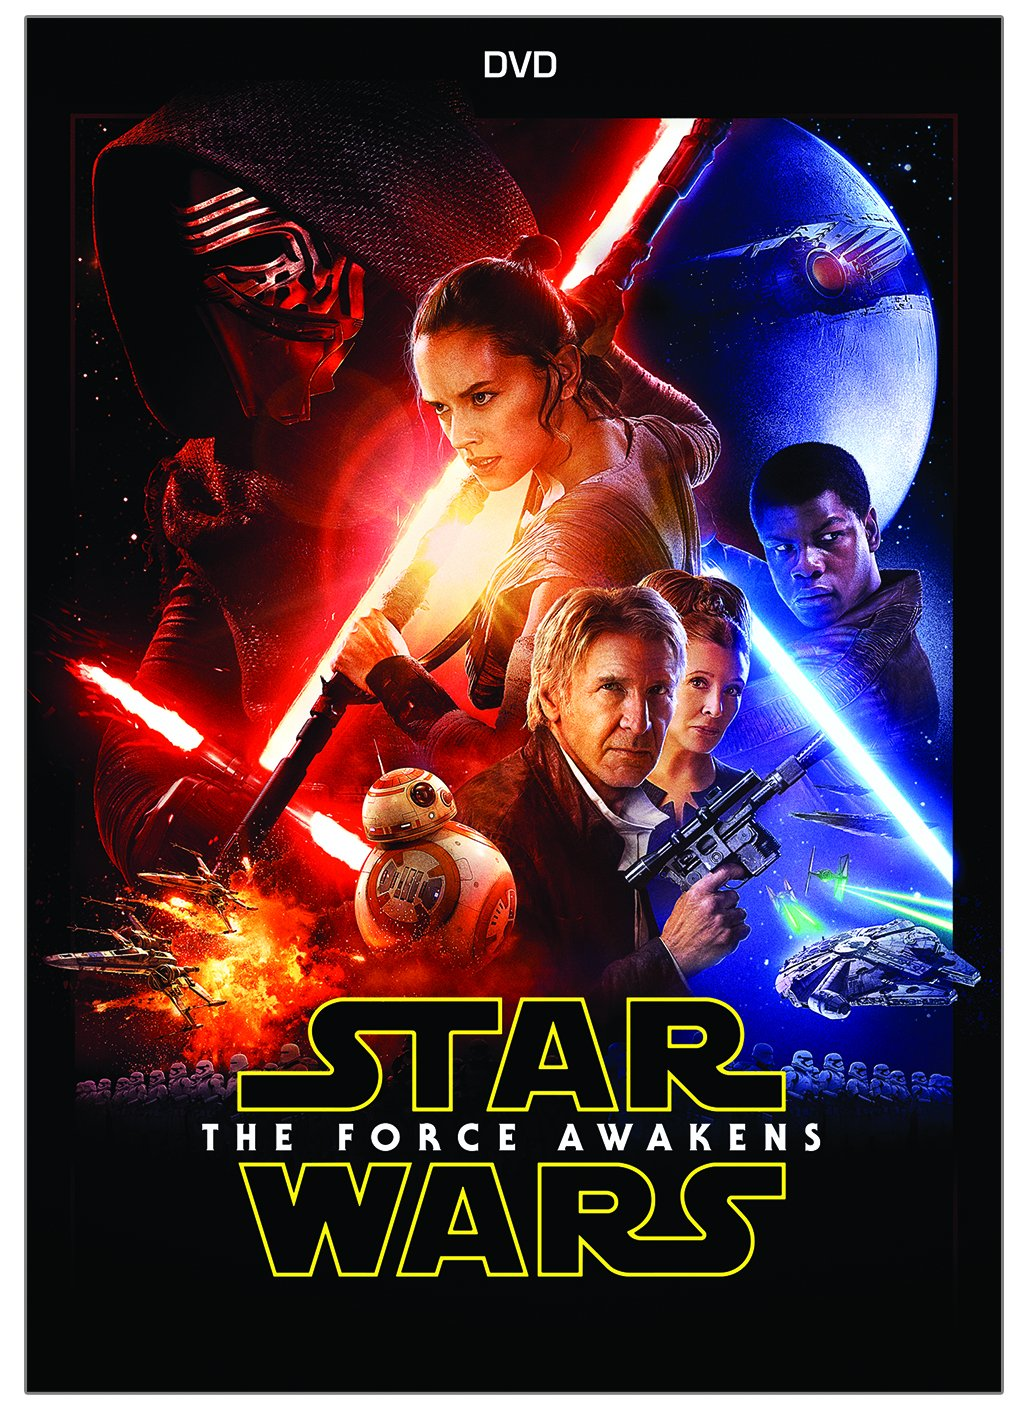 Amazon.com: Star Wars: The Force Awakens: Harrison Ford, Mark Hamill,  Carrie Fisher, Adam Driver, Daisy Ridley, John Boyega, Oscar Isaac, Lupita  Nyongu0027o, ...